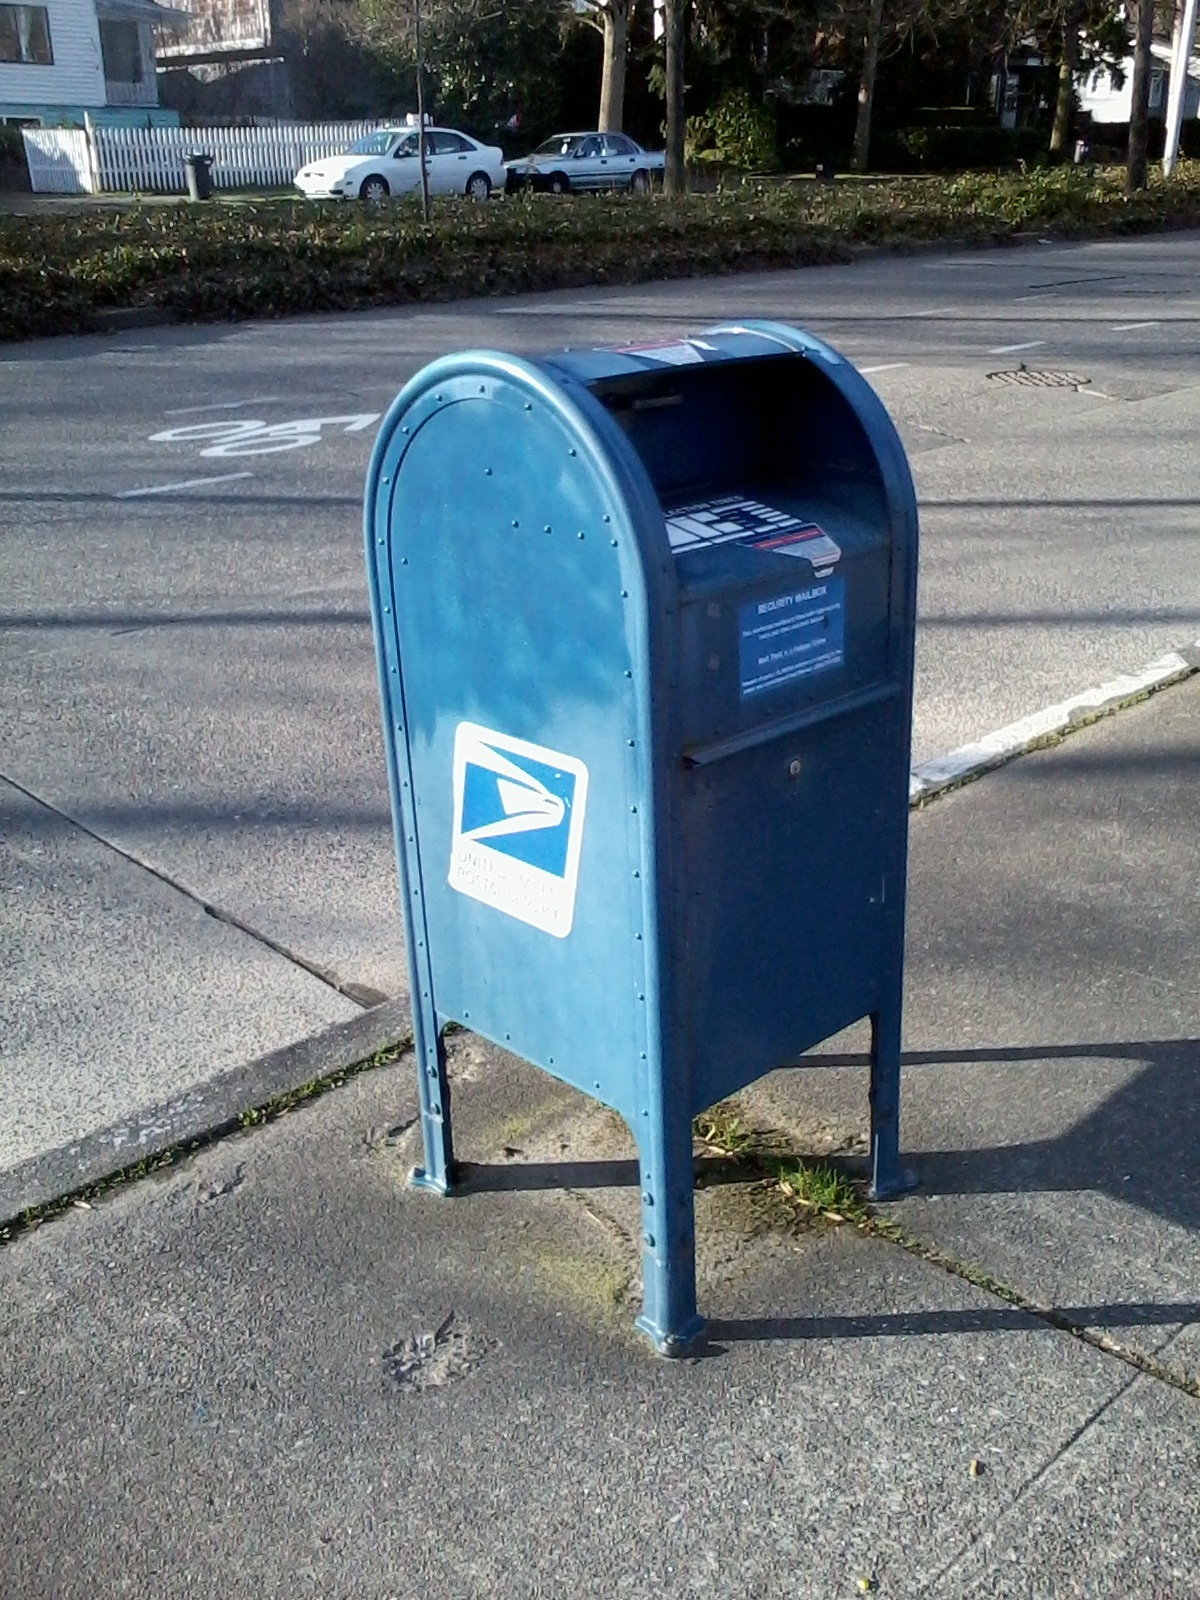 how to open a po box at usps